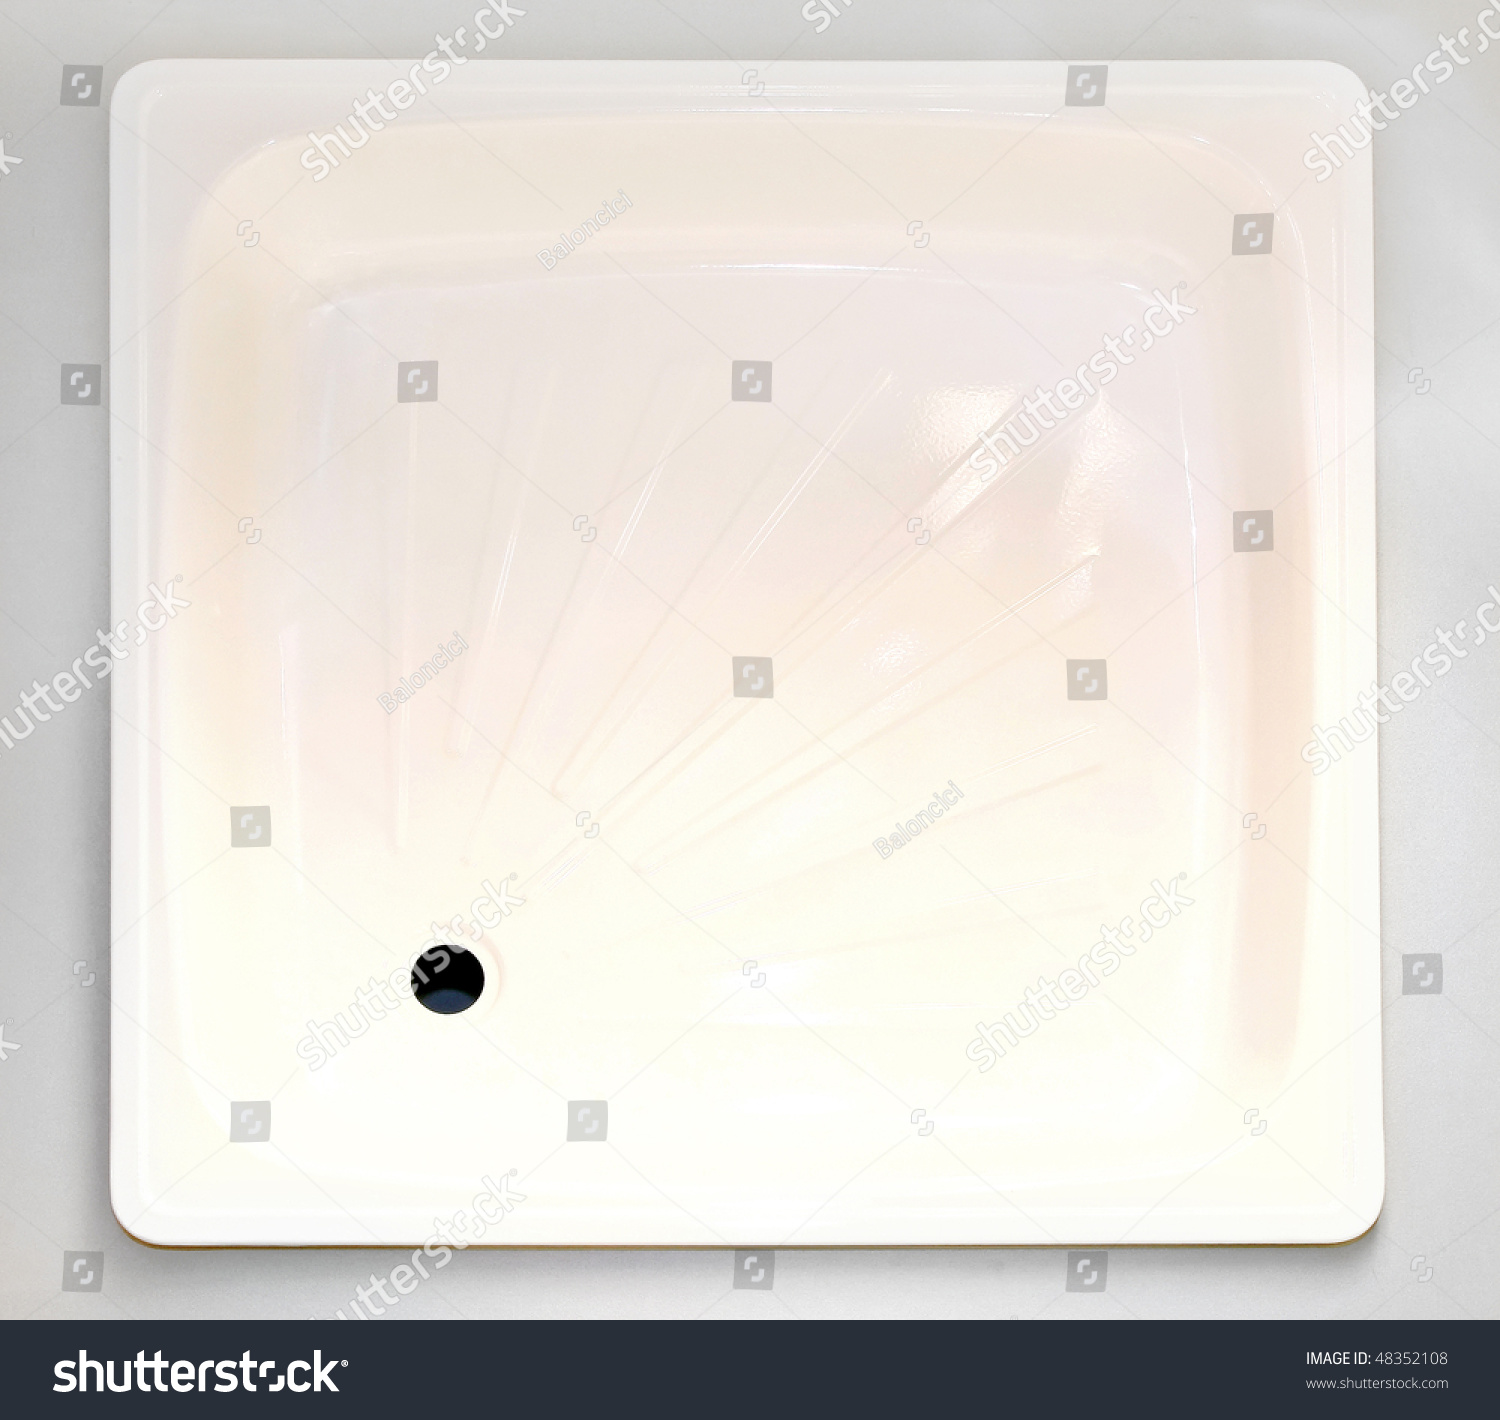 Top view of white shower square base. Top View White Shower Square Base Stock Photo 48352108   Shutterstock